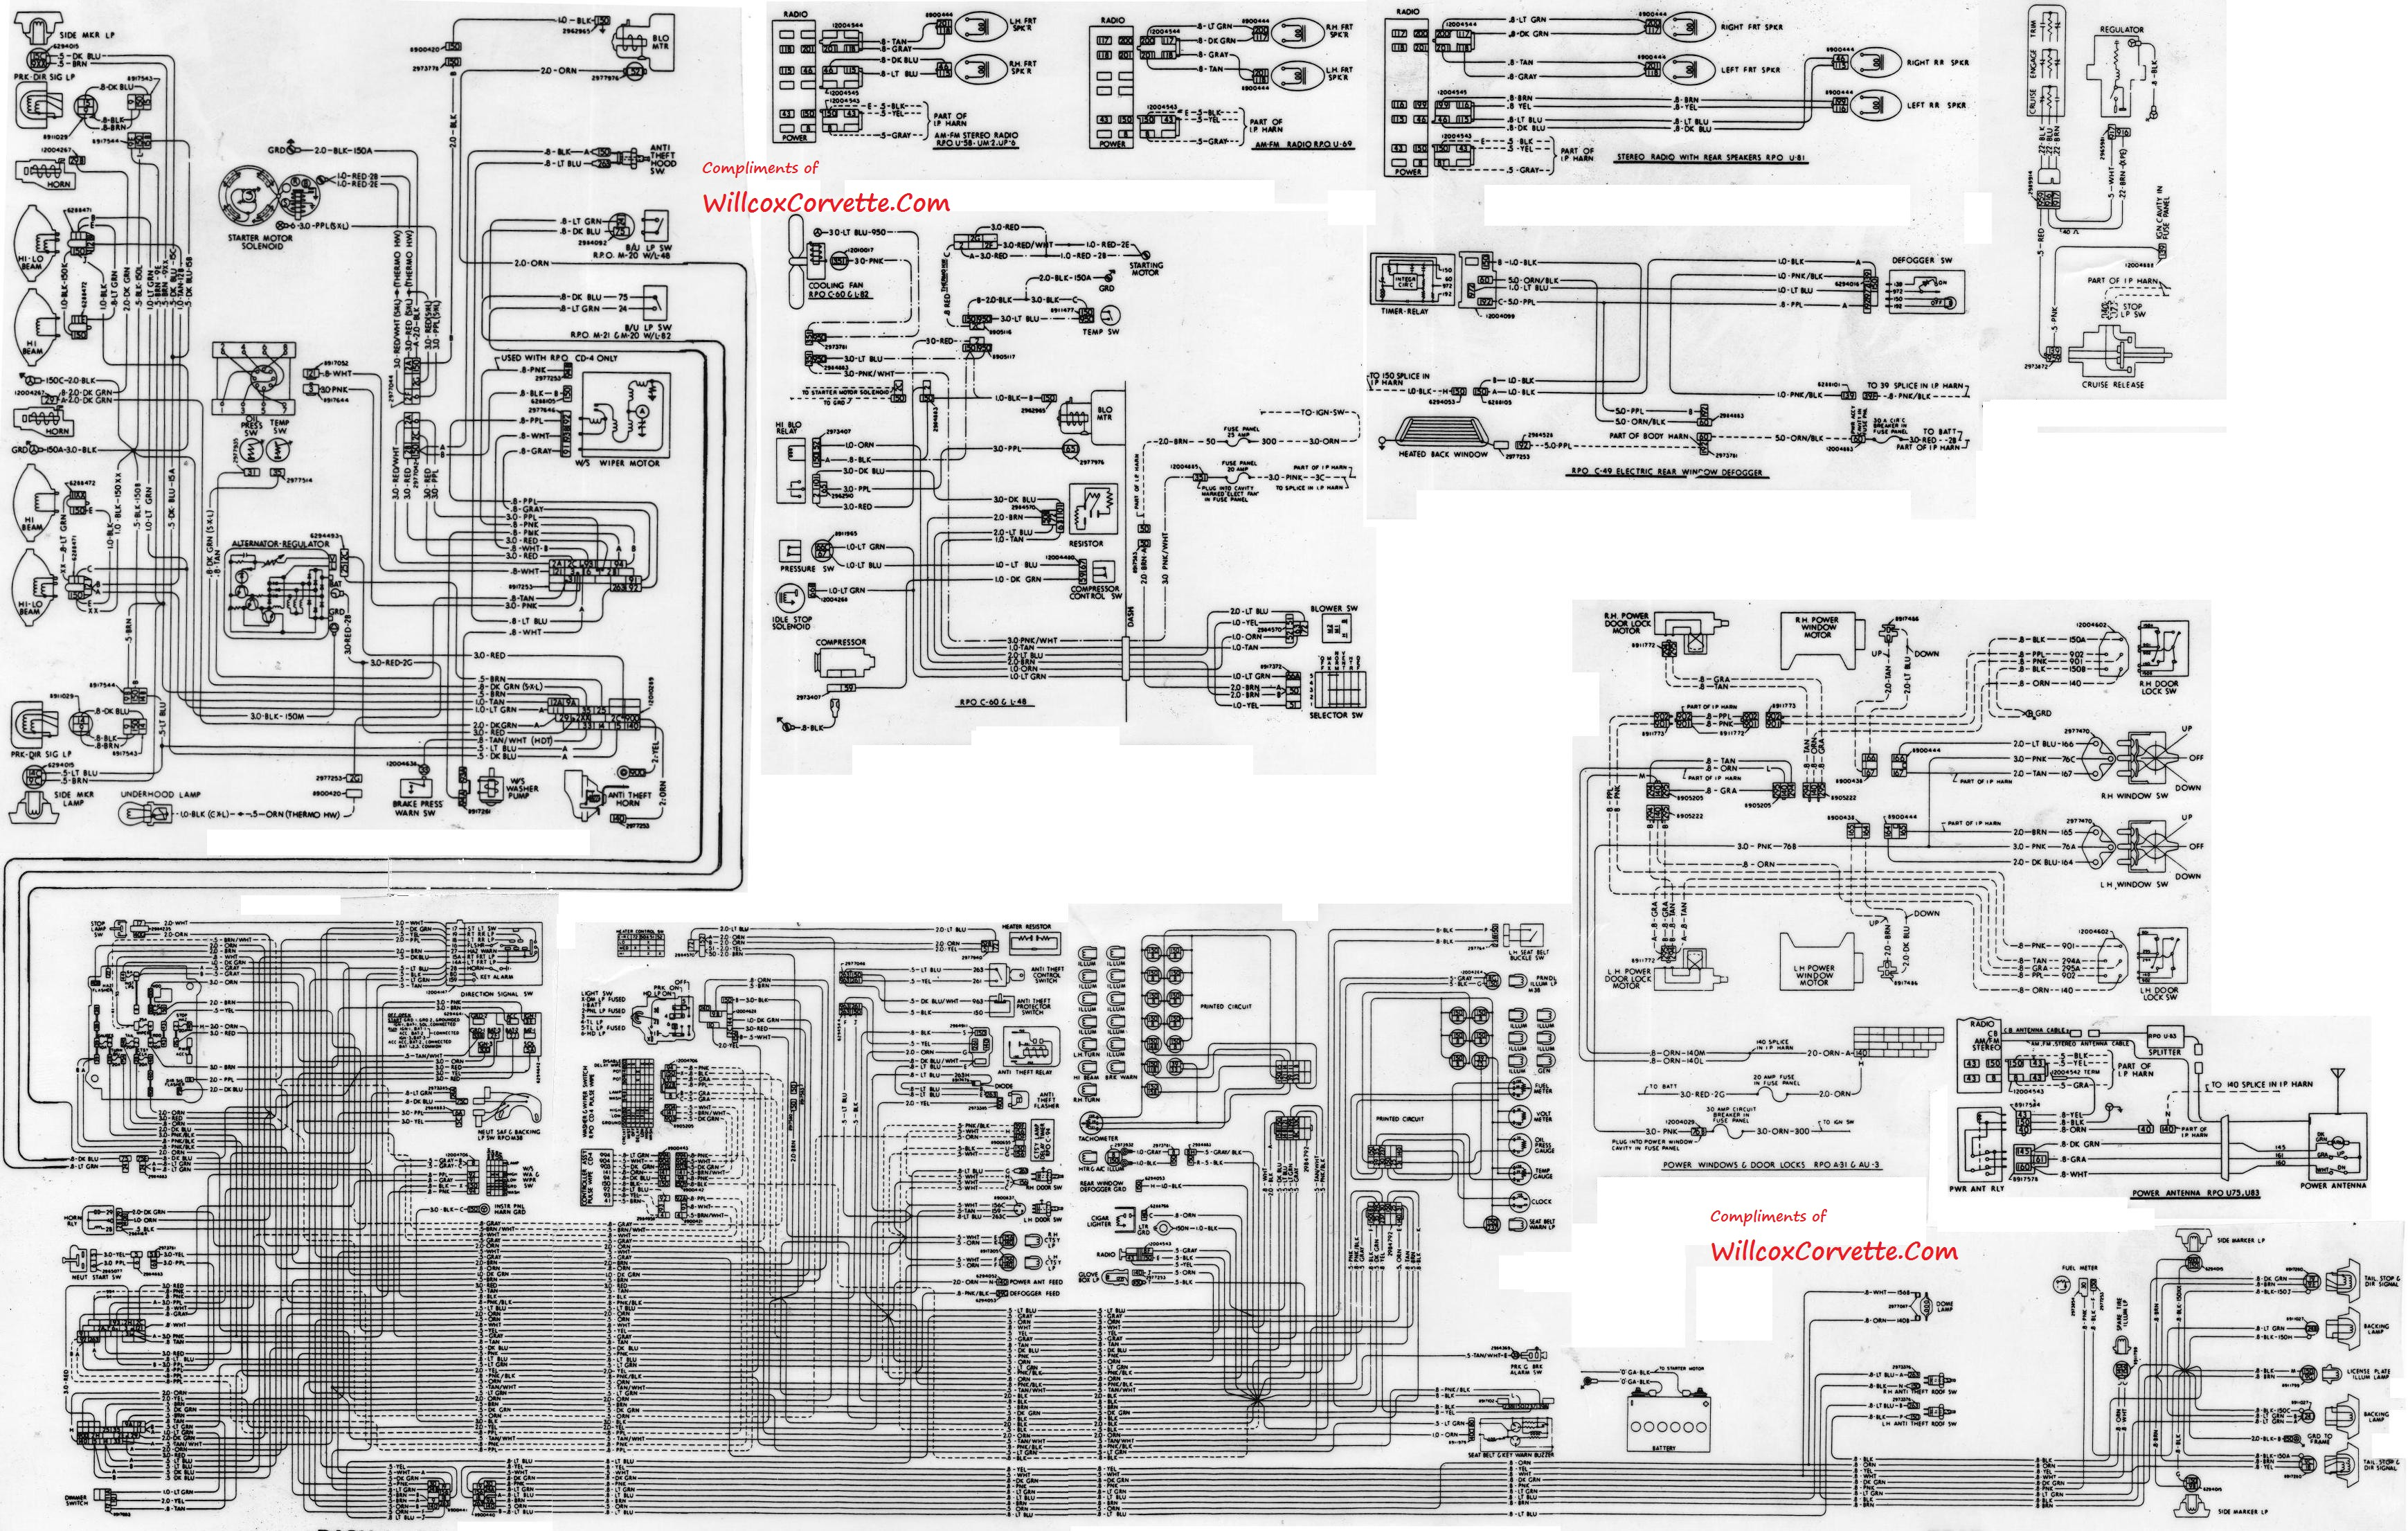 67 Corvette Wiring Diagram - Wiring Diagram •